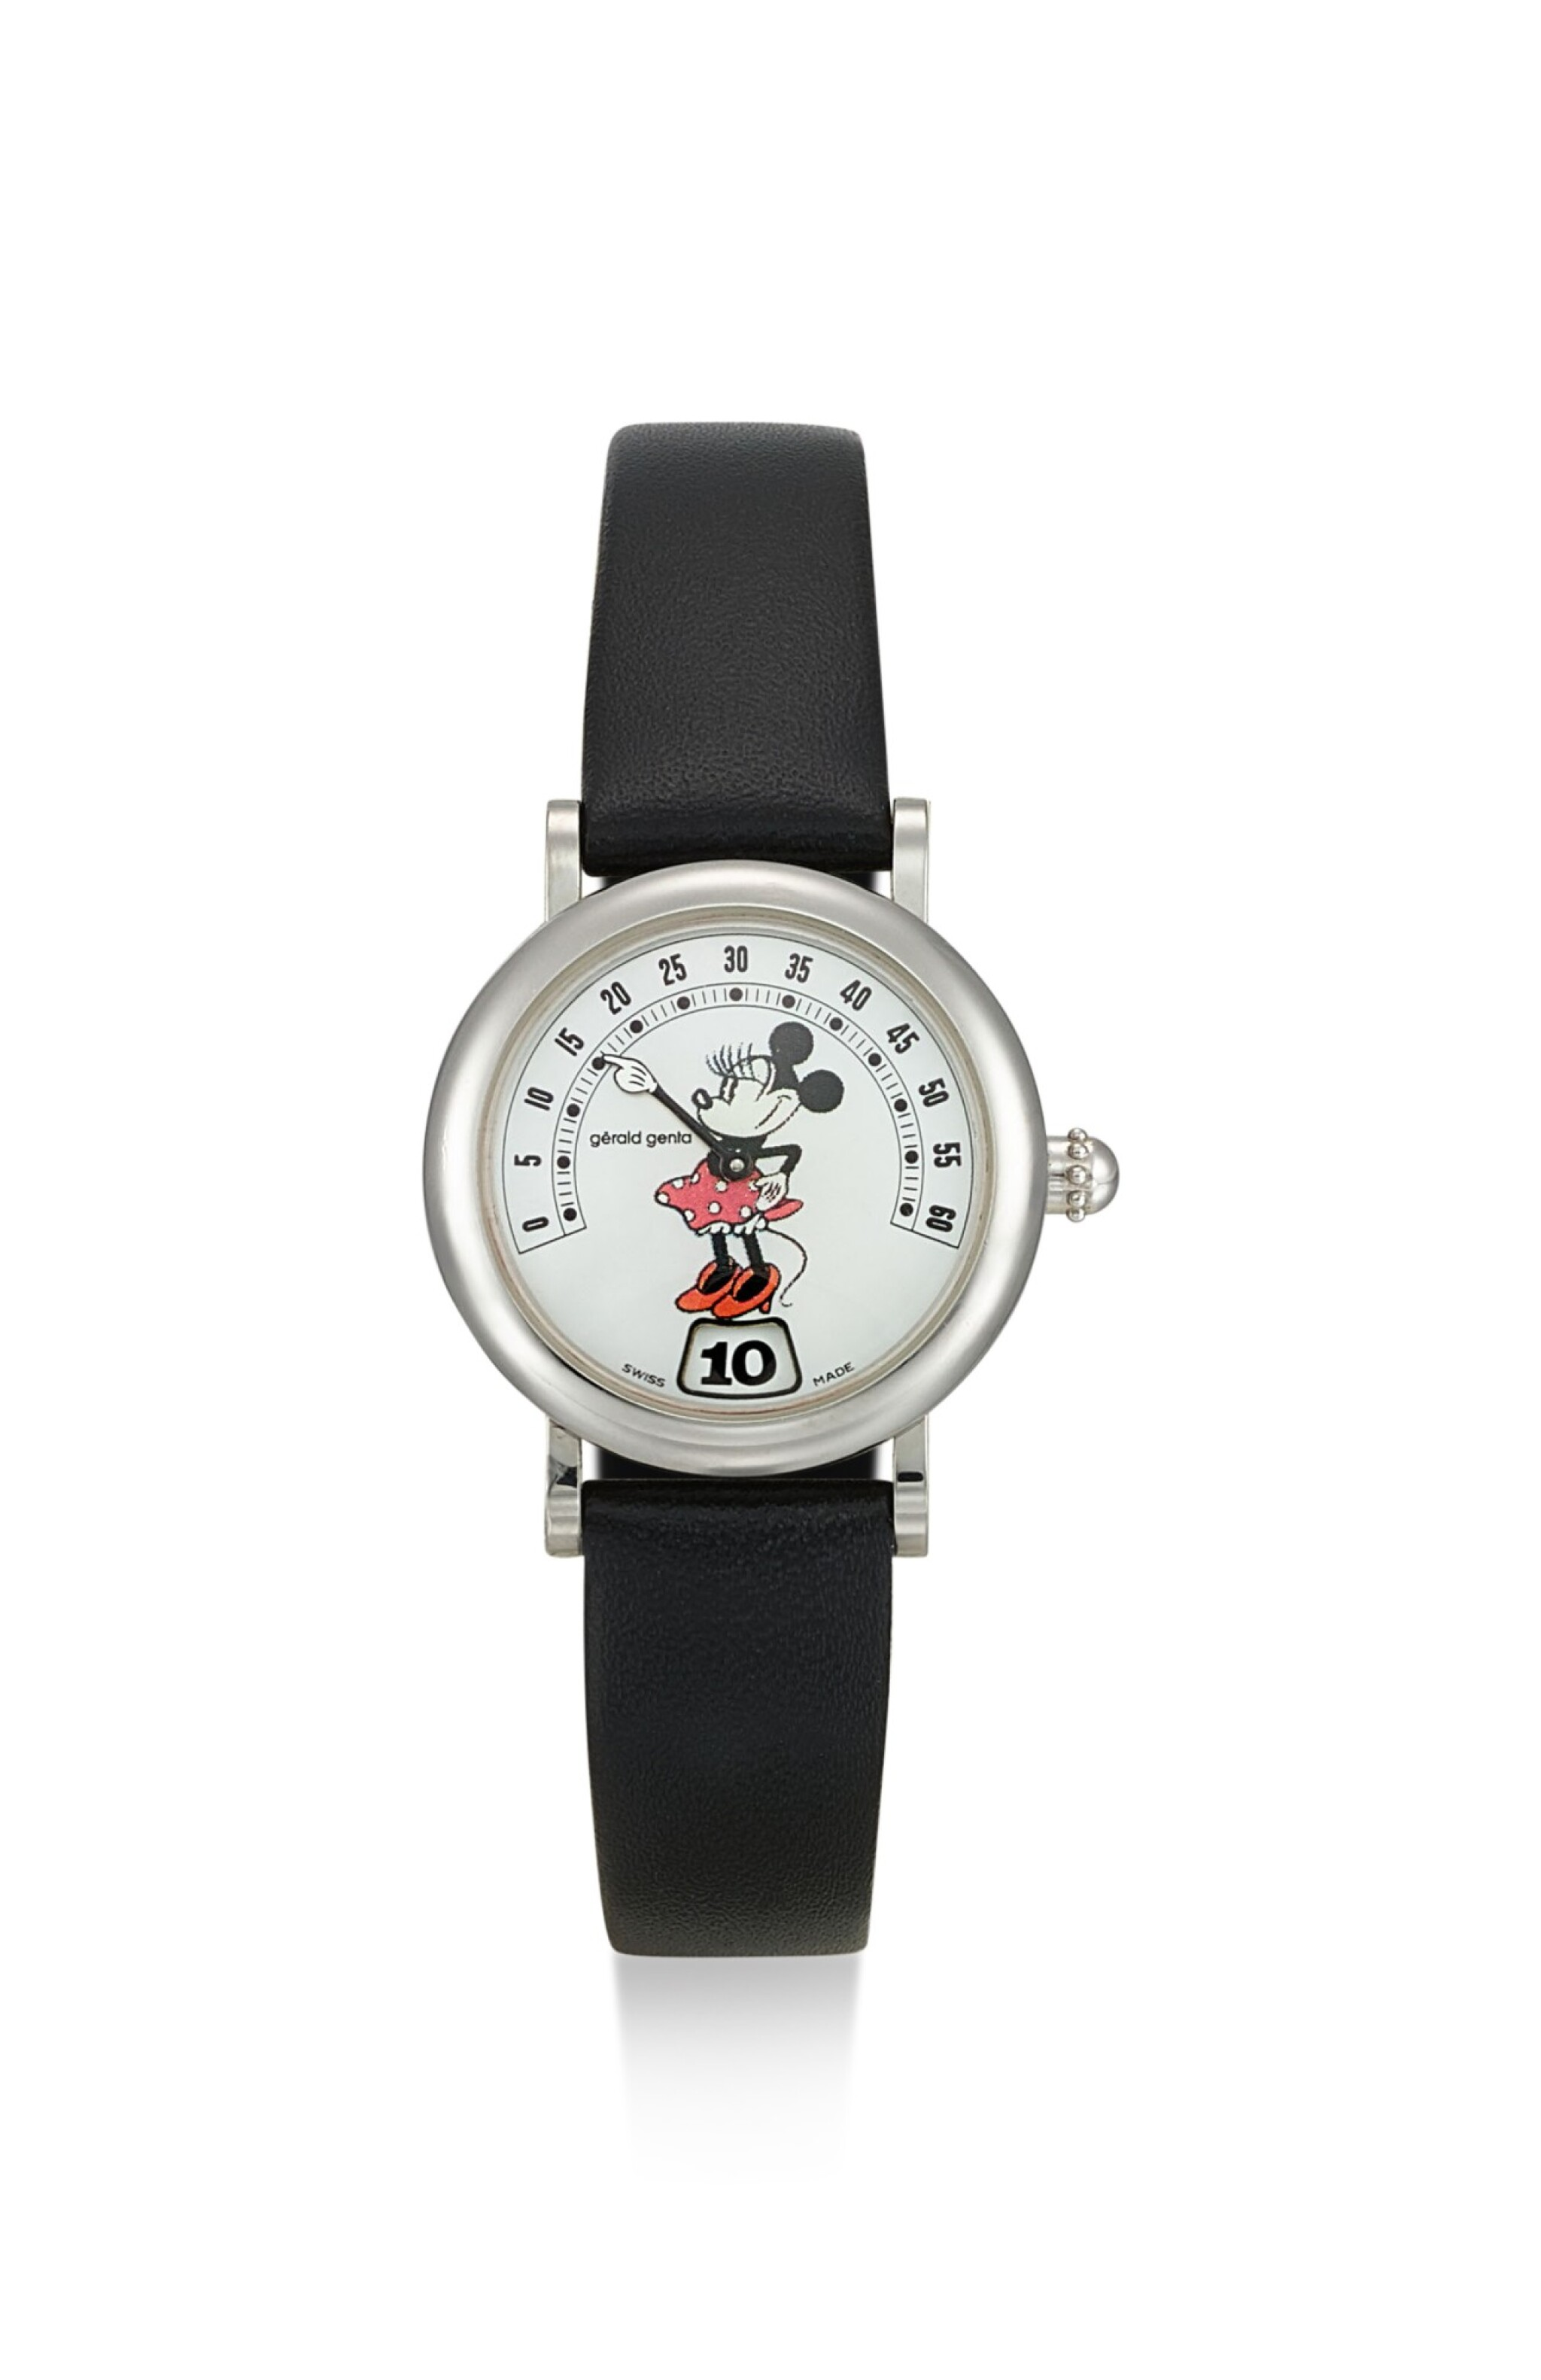 View 1 of Lot 8234. GÉRALD GENTA | FANTASY RETRO MINNIE MOUSE, REFERENCE G.3622.7, A STAINLESS STEEL JUMPING HOUR WRISTWATCH WITH RETROGRADE MINUTES AND MOTHER-OF-PEARL DIAL, CIRCA 1995.